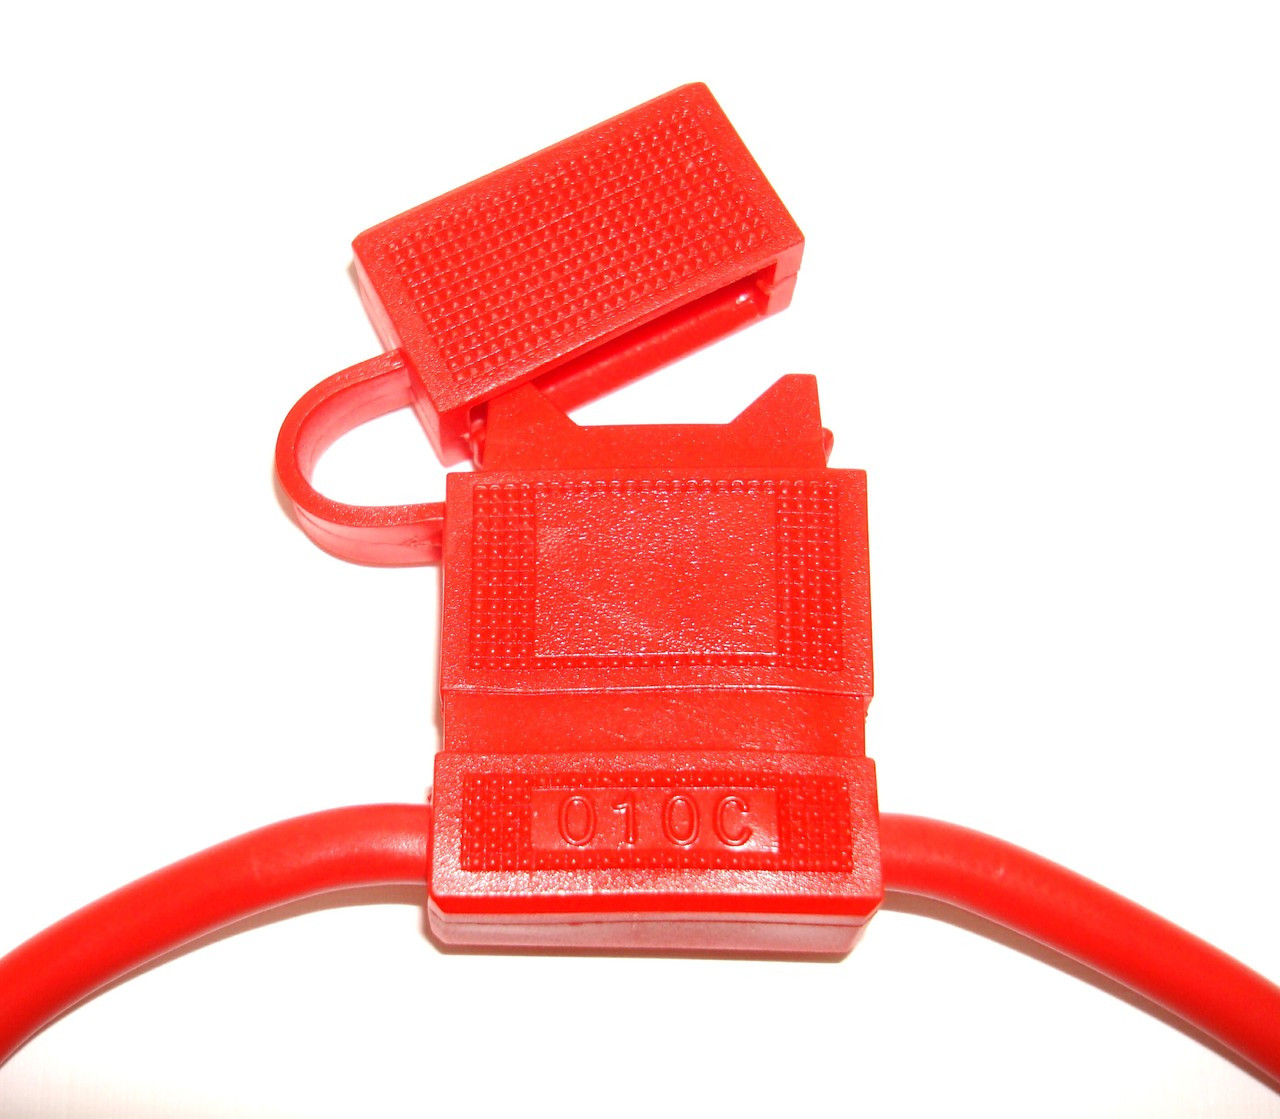 In-Line Fuse Holders with Cap - Red Body, Red 12 AWG Wire. For ATO Style Automotive Fuses